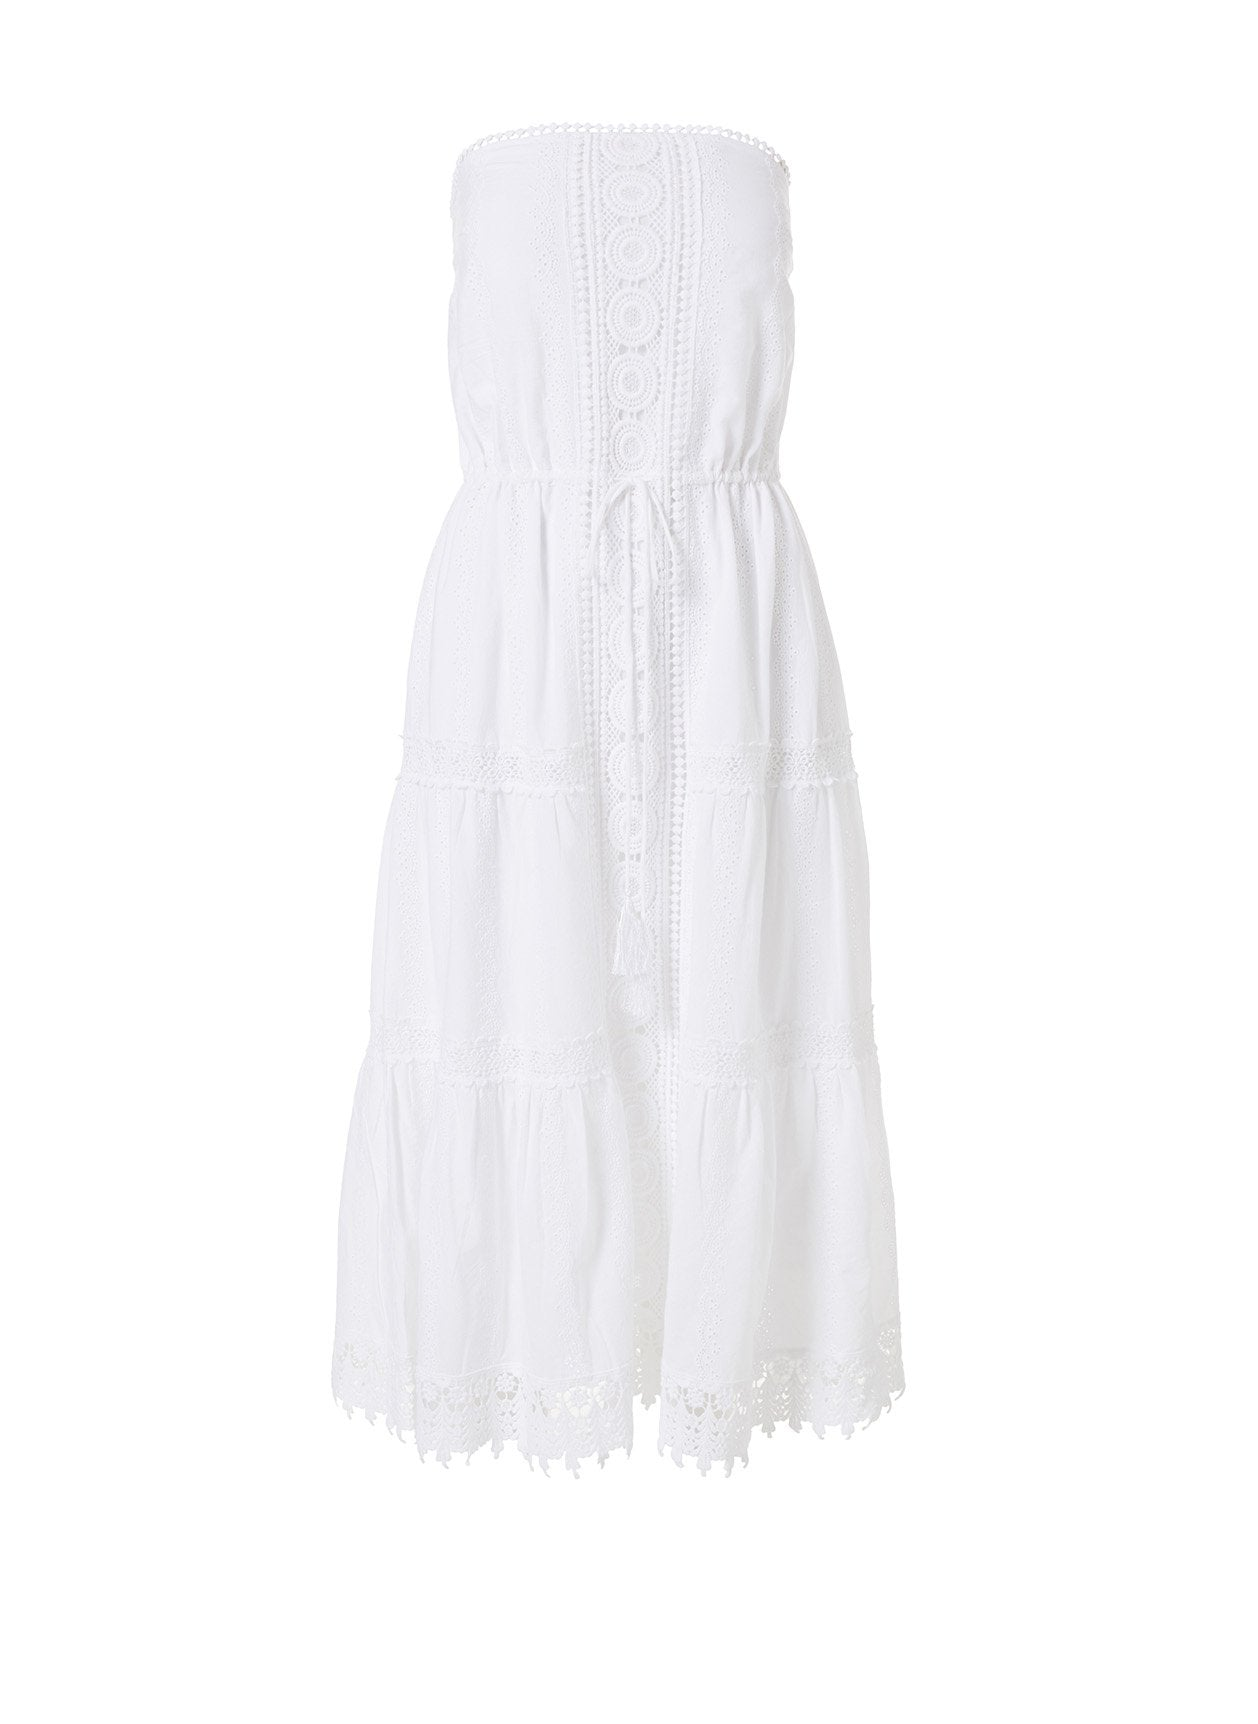 Avalon White Midi Dress